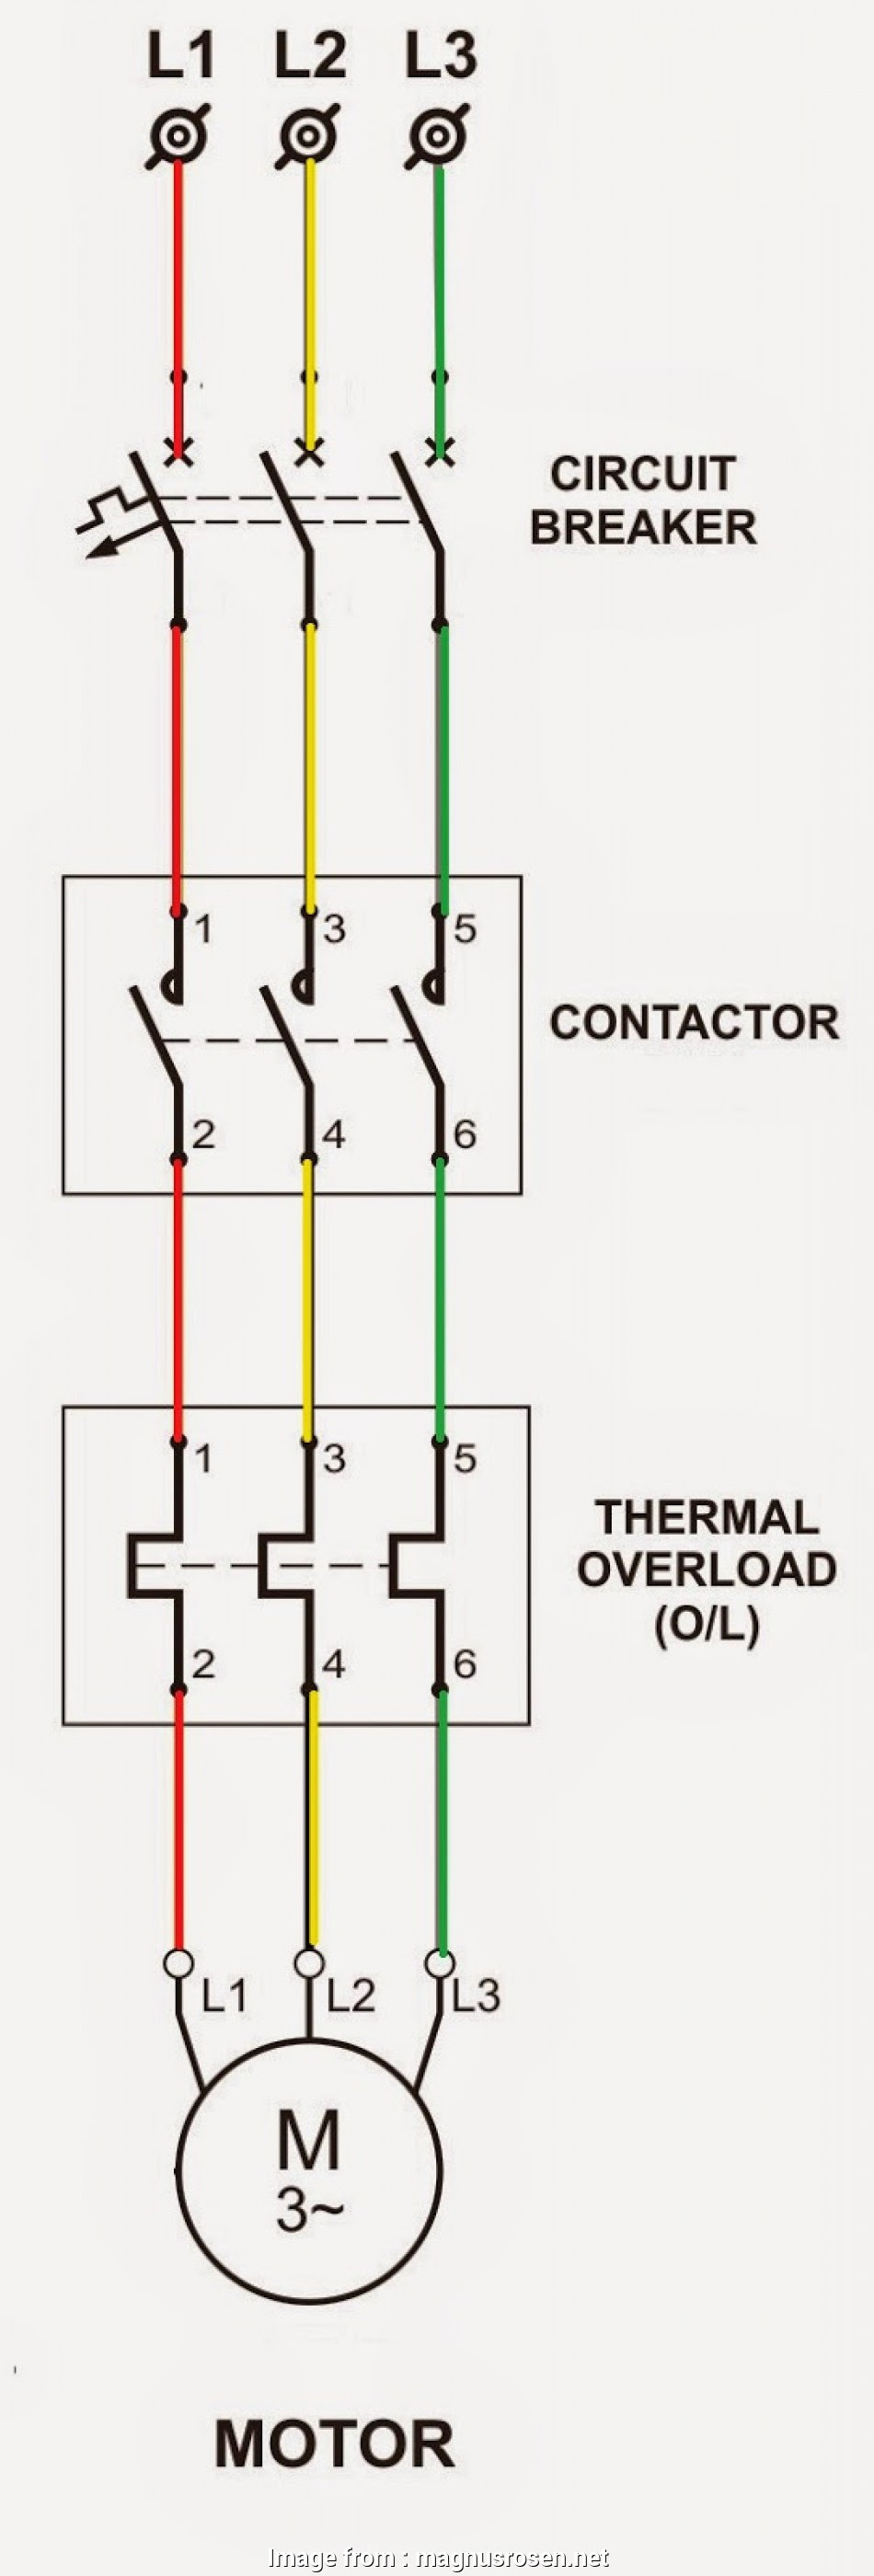 DIAGRAM] Split Capacitor Motor Wiring Diagram Hecho FULL Version HD Quality Diagram  Hecho - SESHGUIDE.MARQUAGEPASCHER.FRElectrical Wiring Diagram